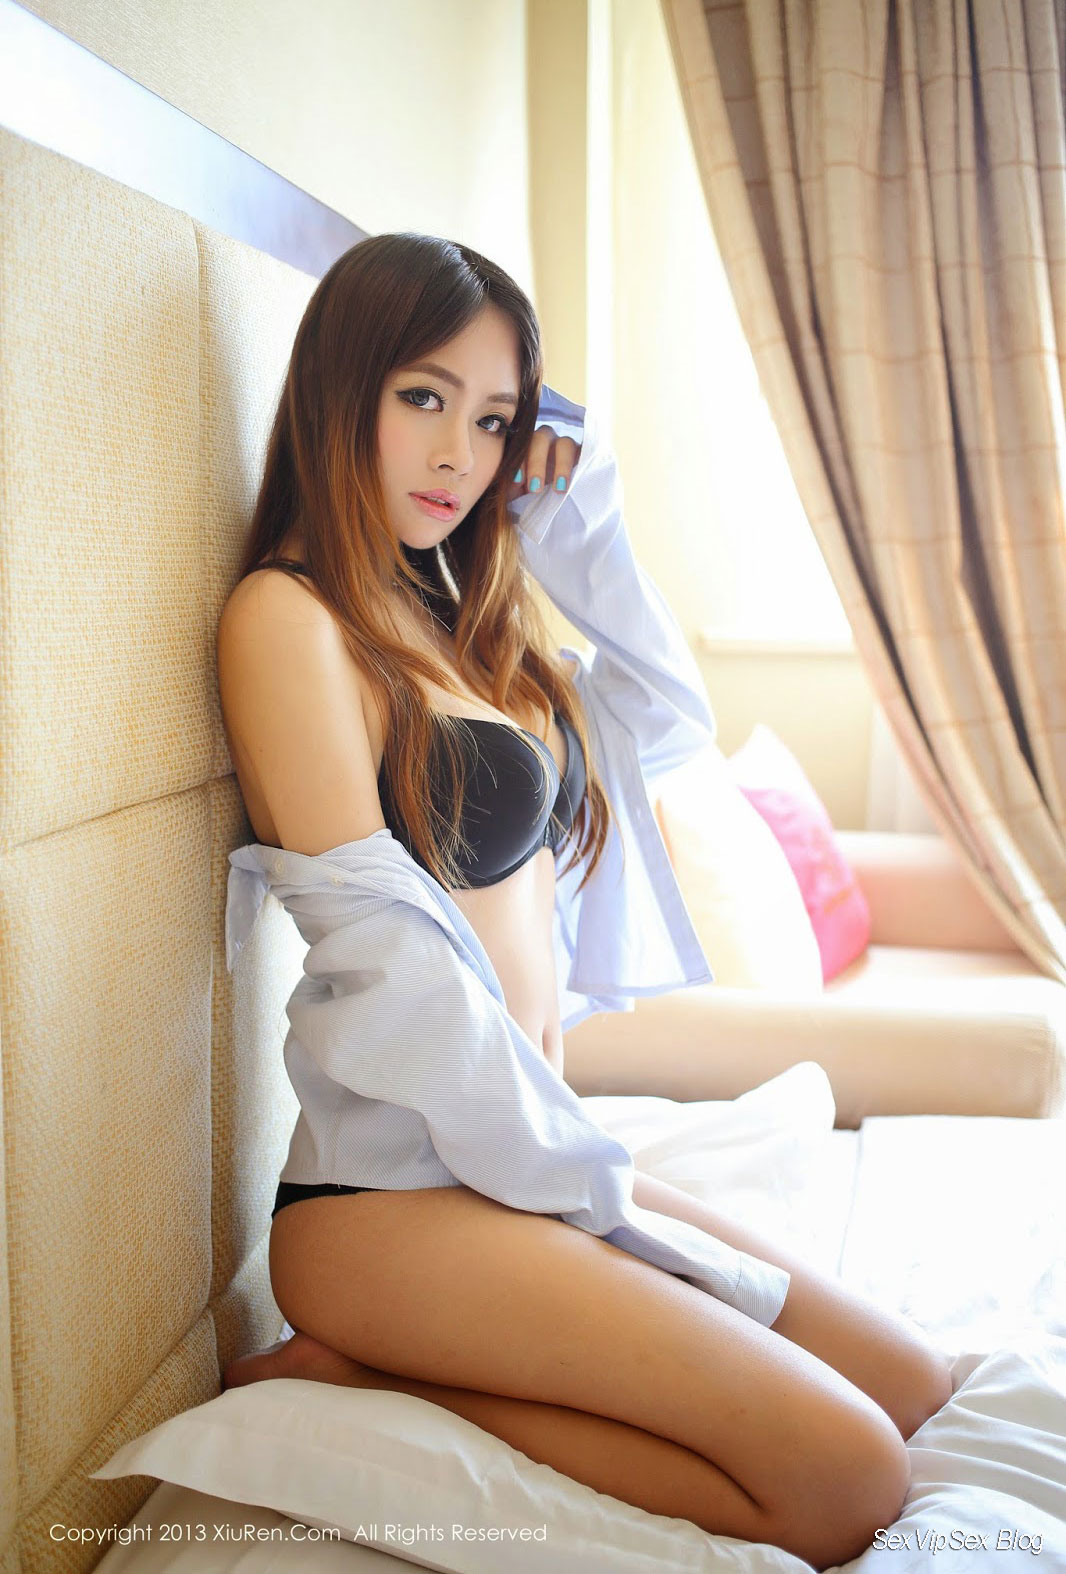 Consider, that Chinese gorgeous women nude pics cheaply